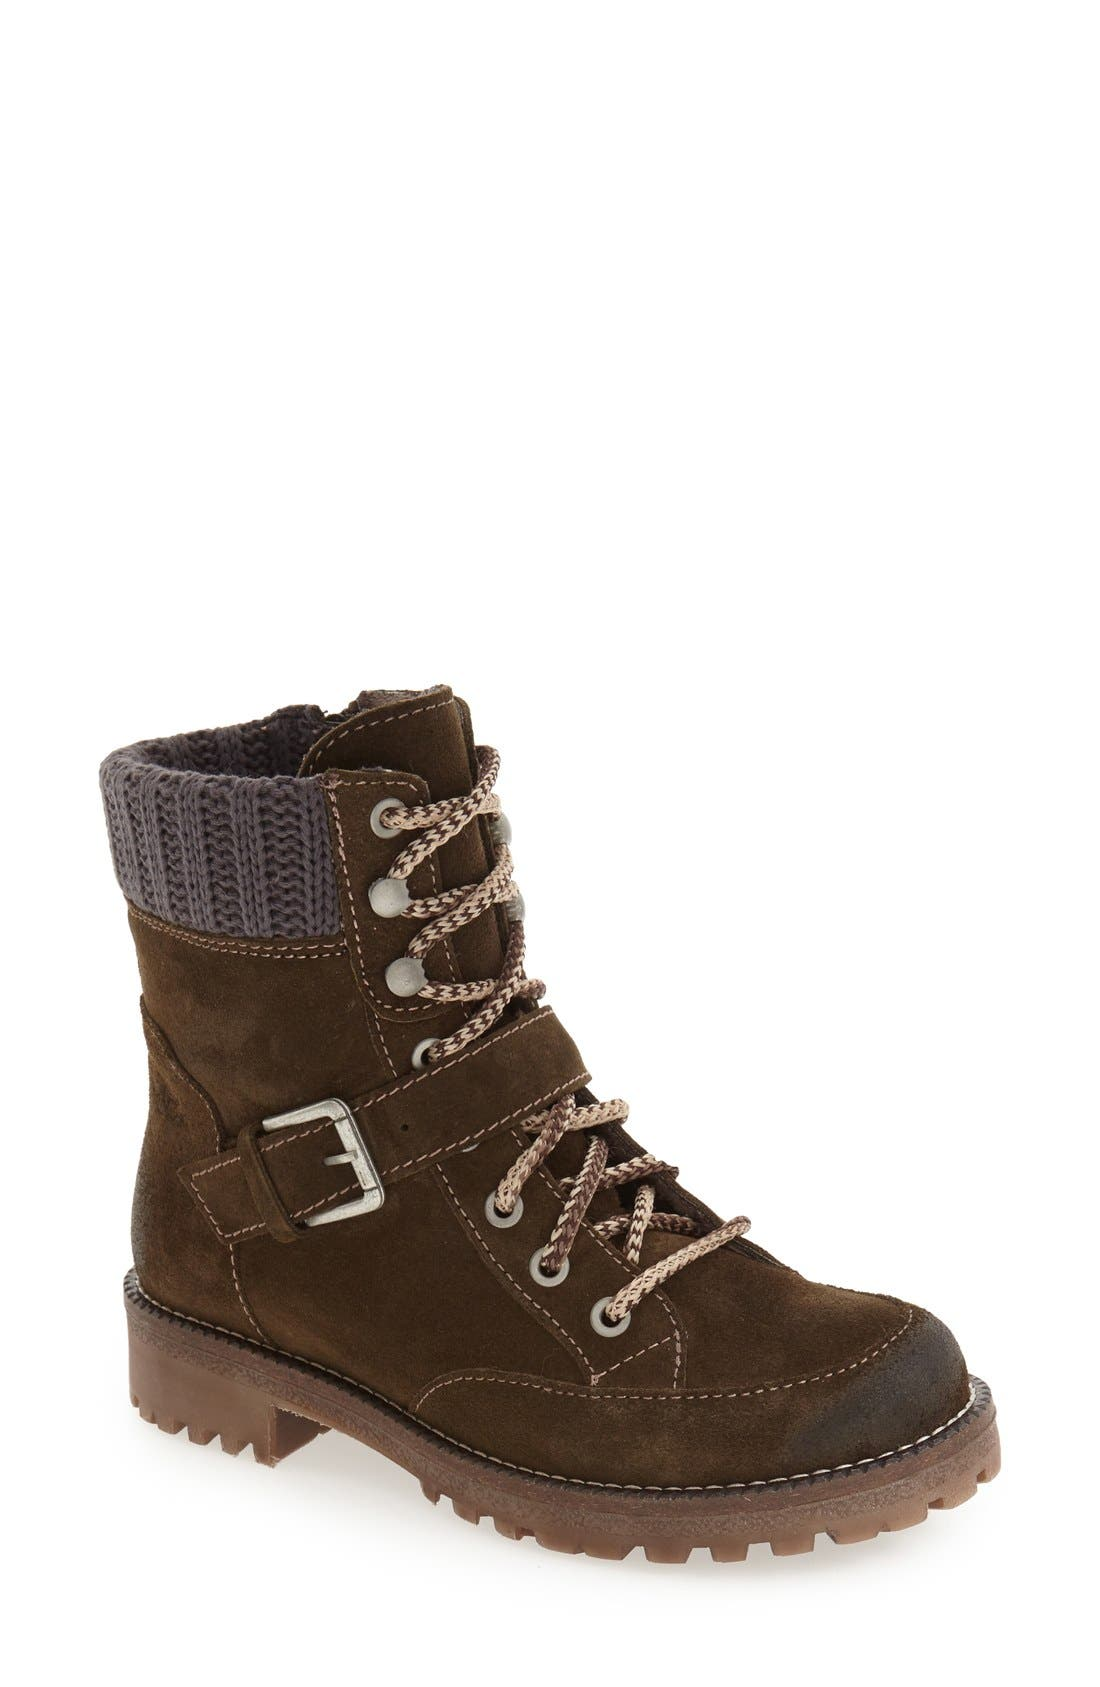 BOS. & CO. 'Colony' Waterproof Boot